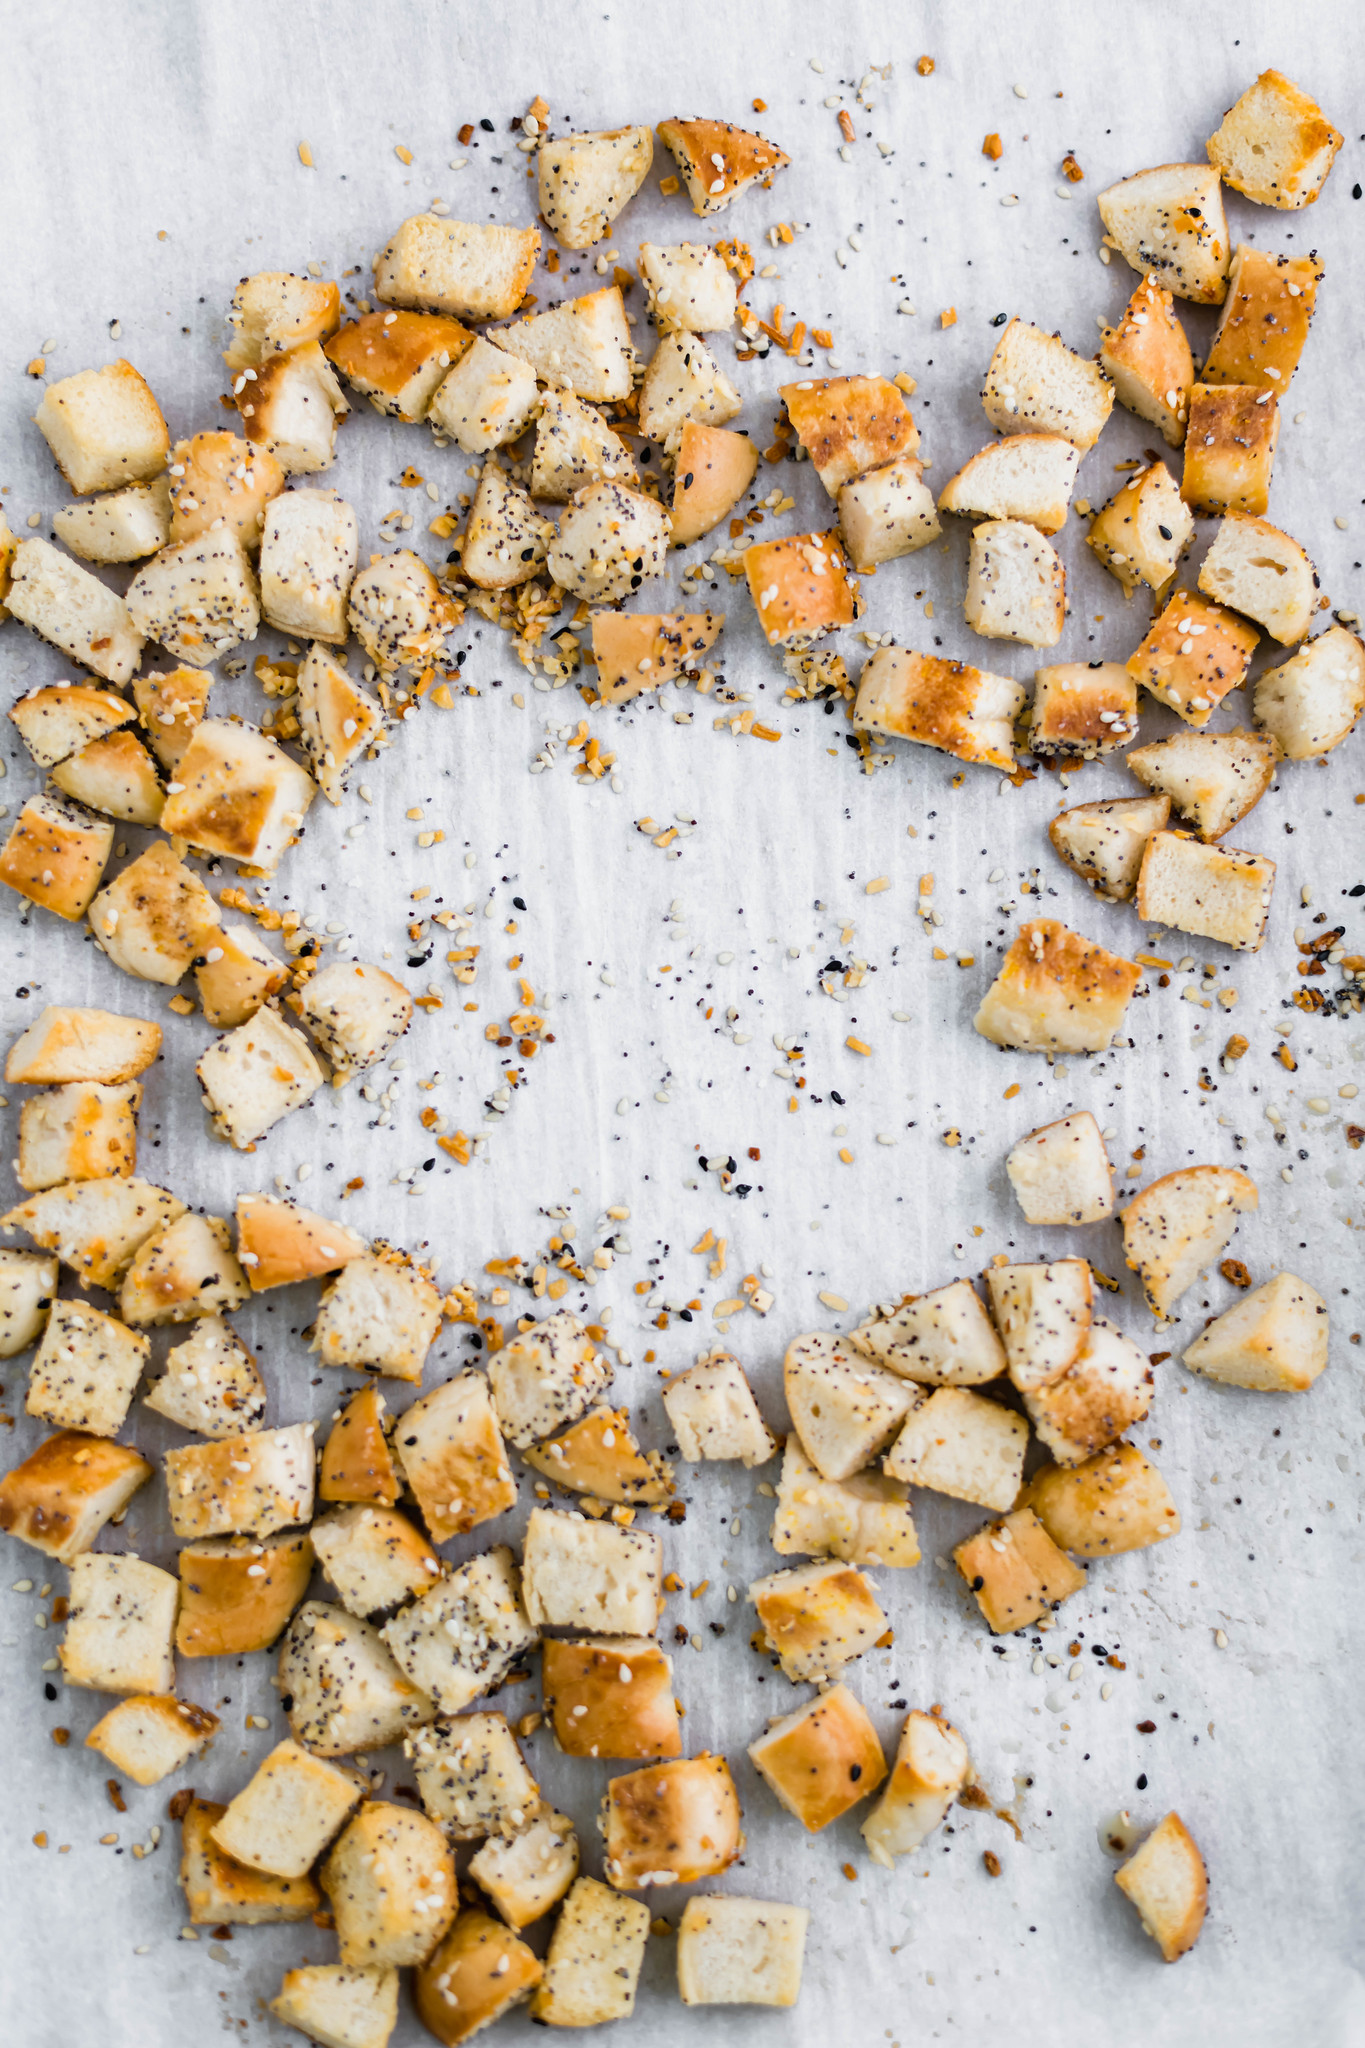 Everything bagel croutons spread out on a parchment lined baking sheet.